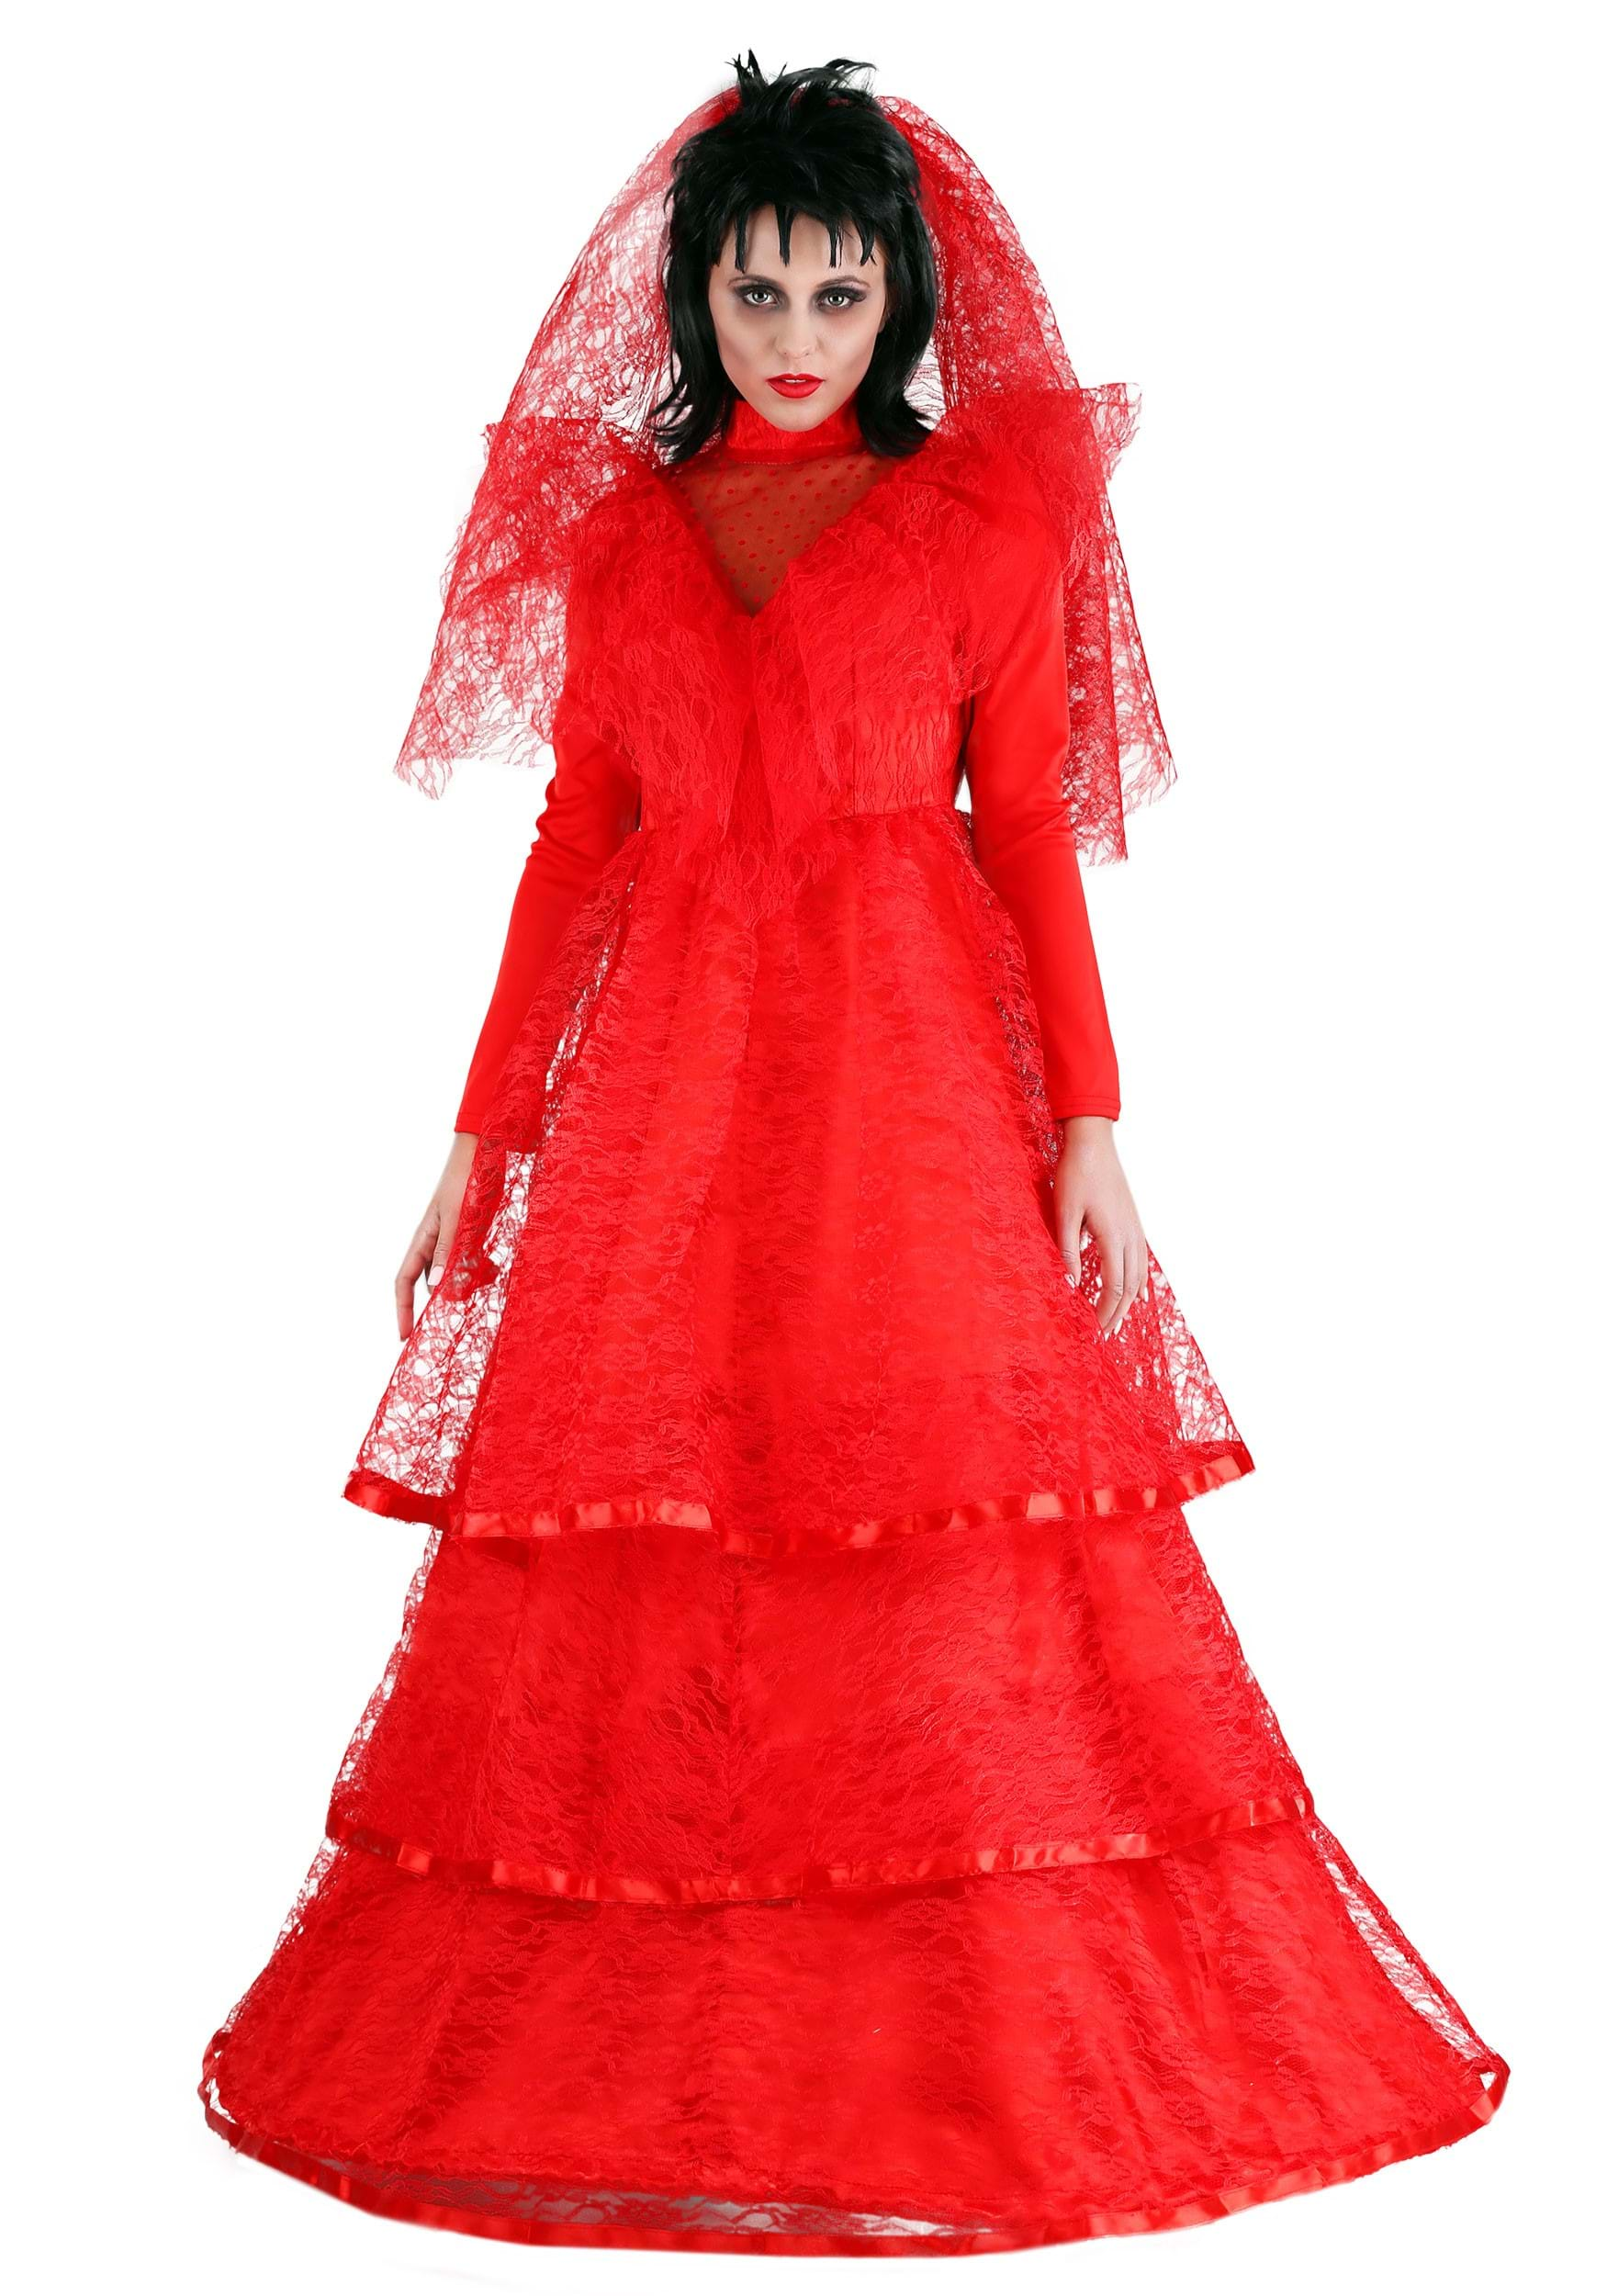 Scary halloween costumes kids adult scary halloween costume ideas red gothic wedding dress costume solutioingenieria Gallery